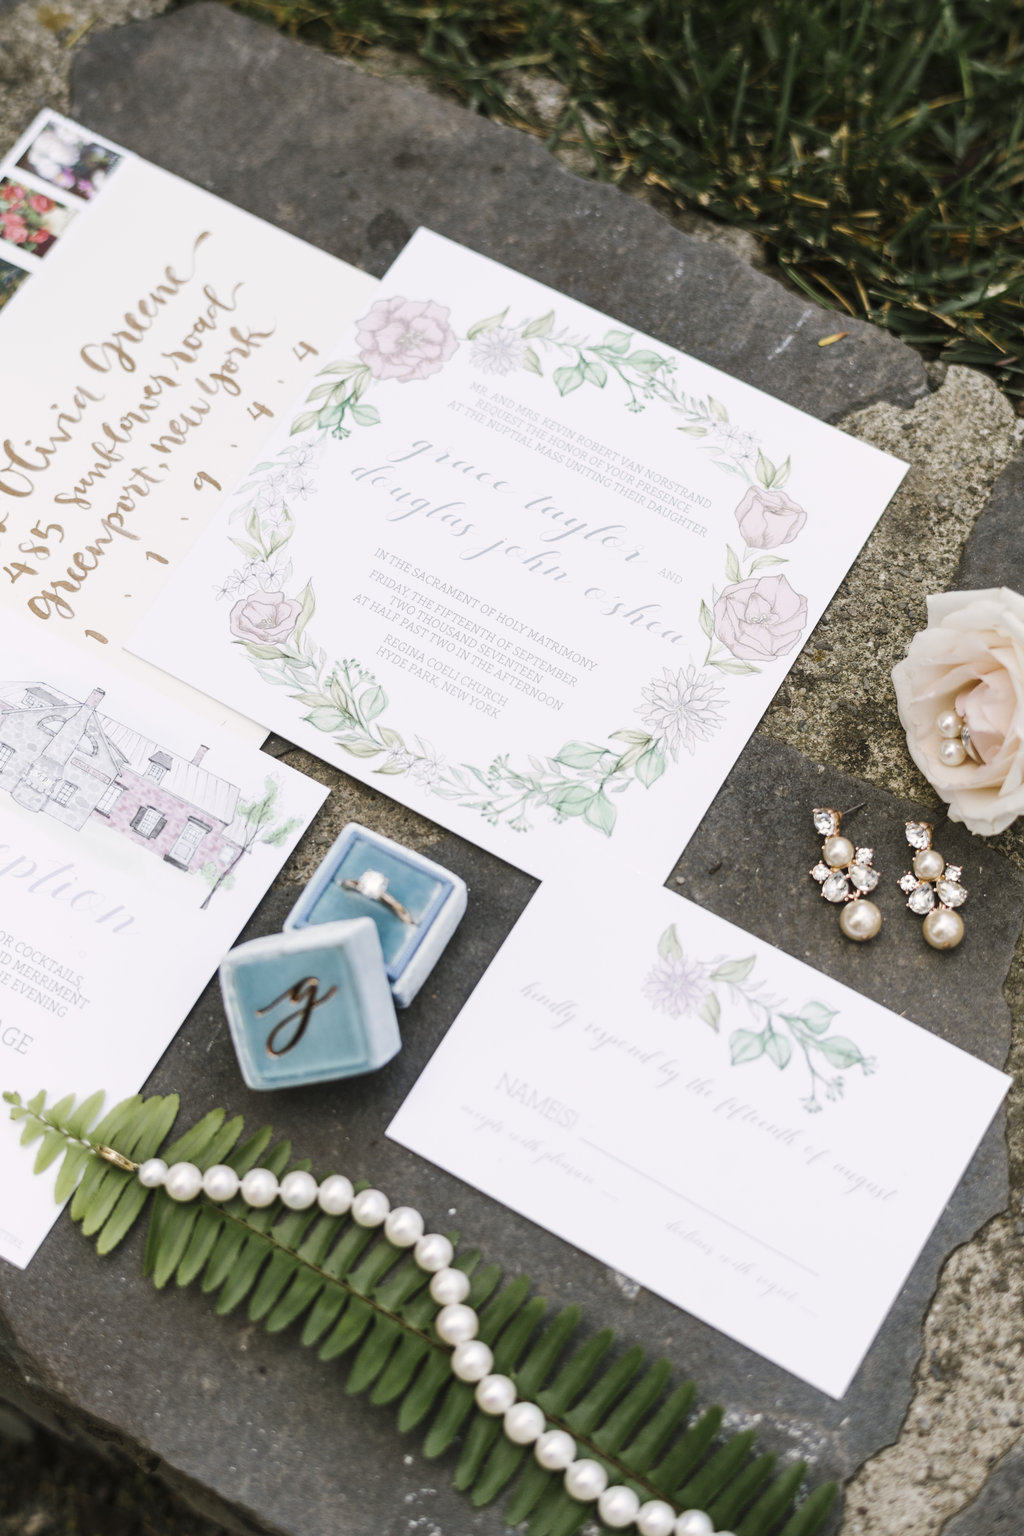 Coppola Creative Wedding Design _ Alicia King Photo13.jpg